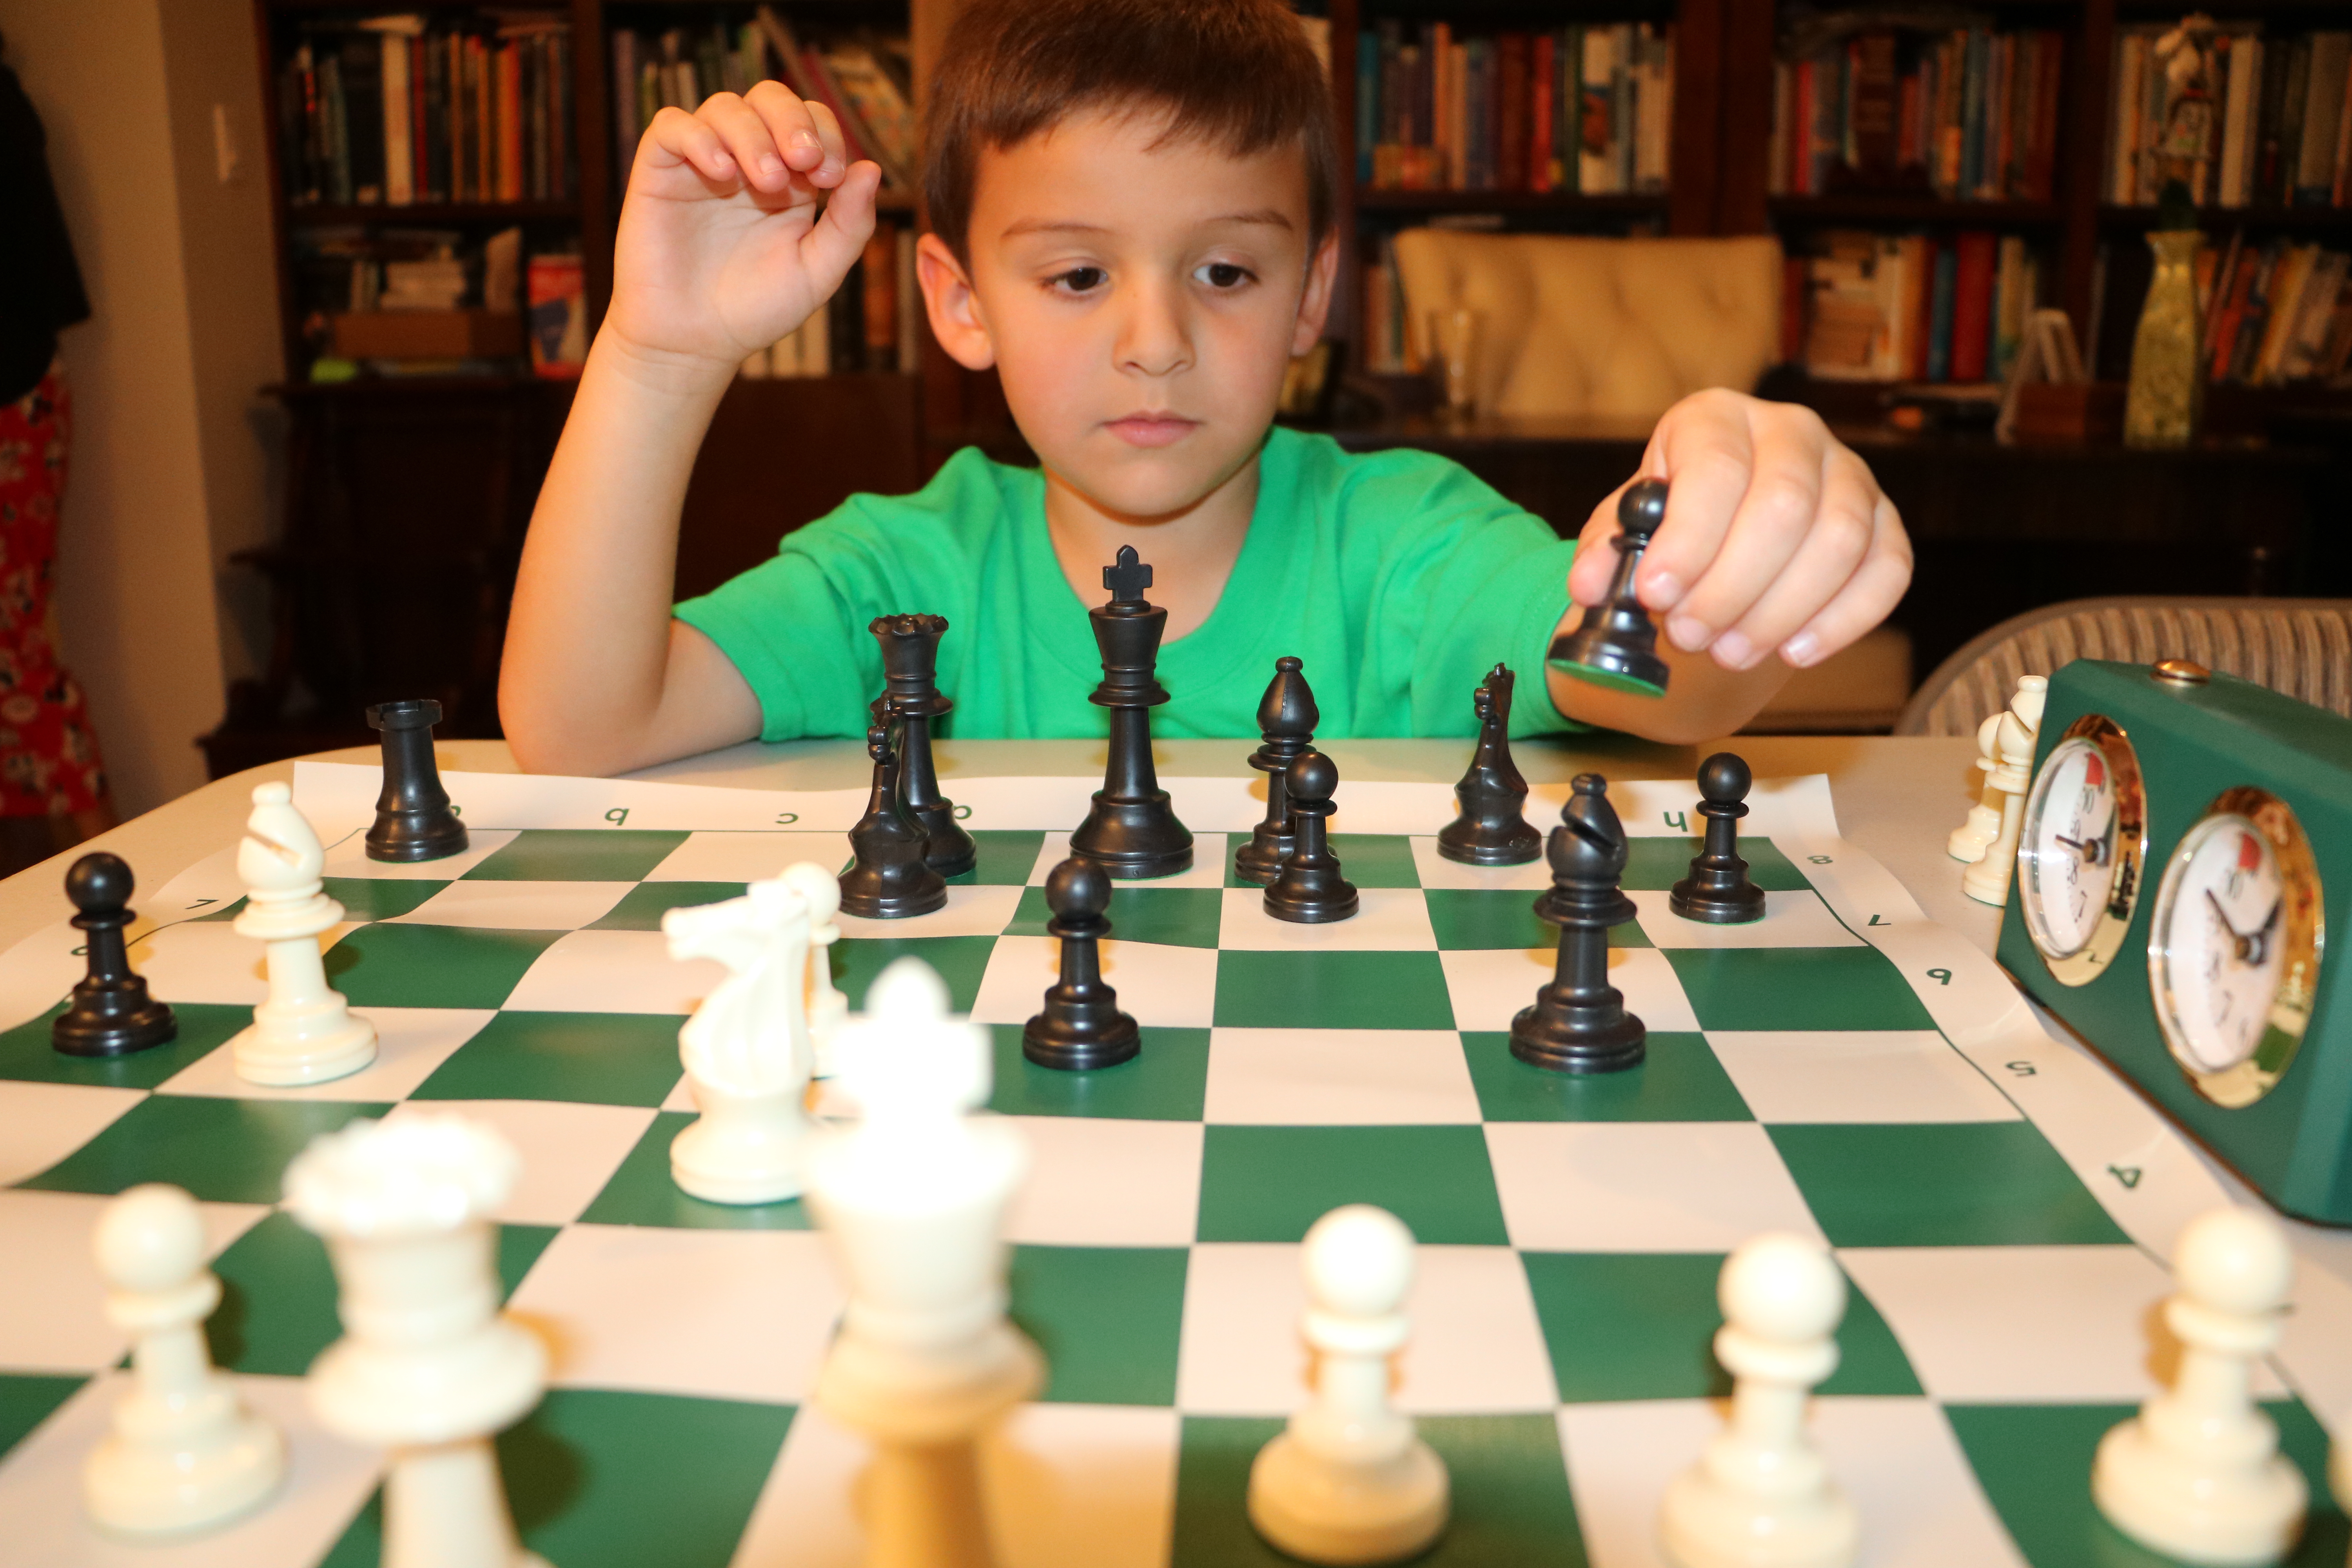 Welcome to the 'Capablanca Chess Academy'